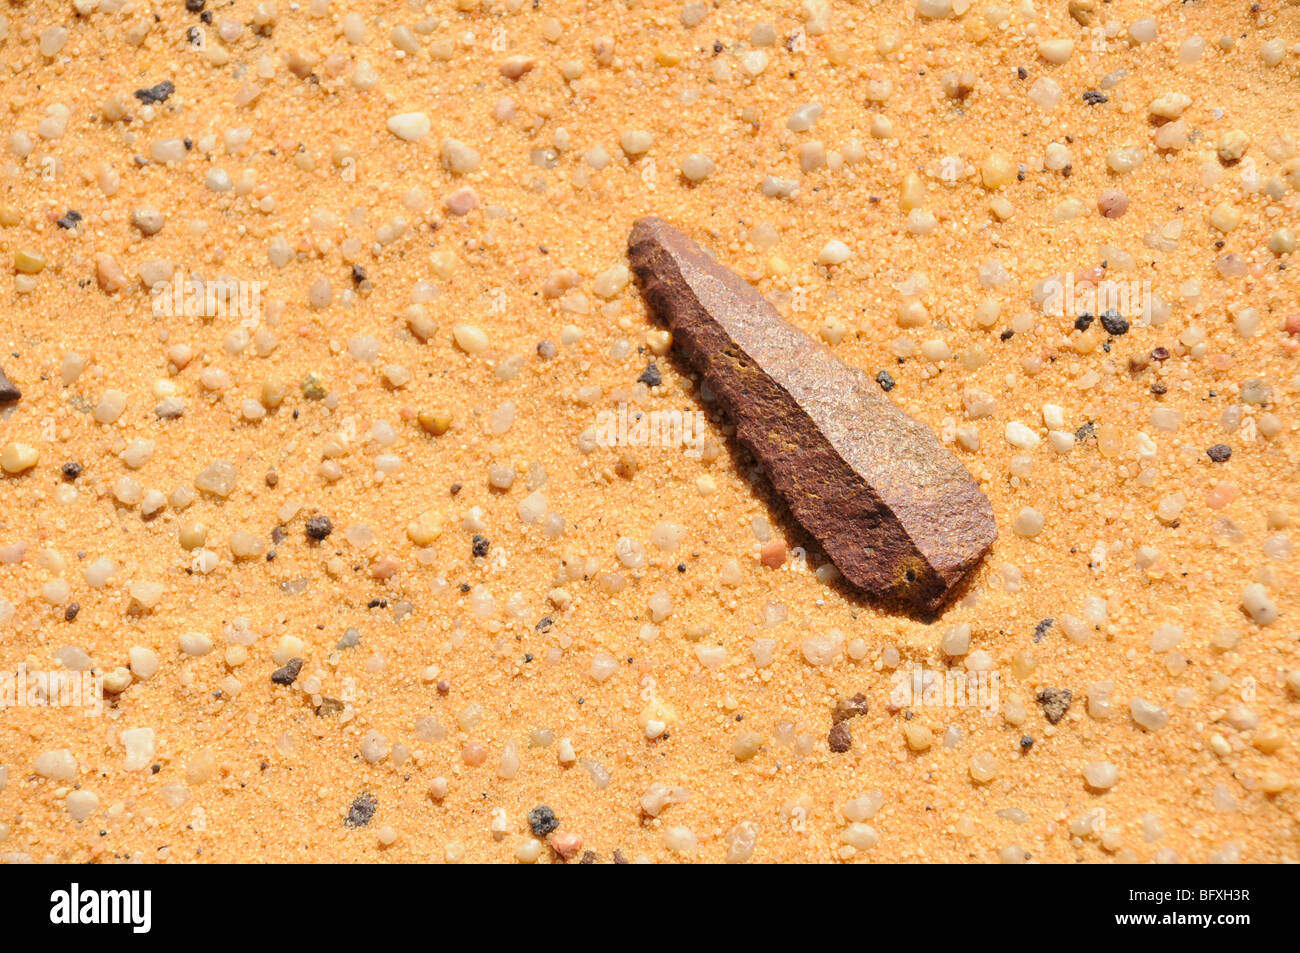 A prehistoric stone arrowhead or spearhead found in the sand of the Gilf Kebir area of the Sahara Desert, in the - Stock Image